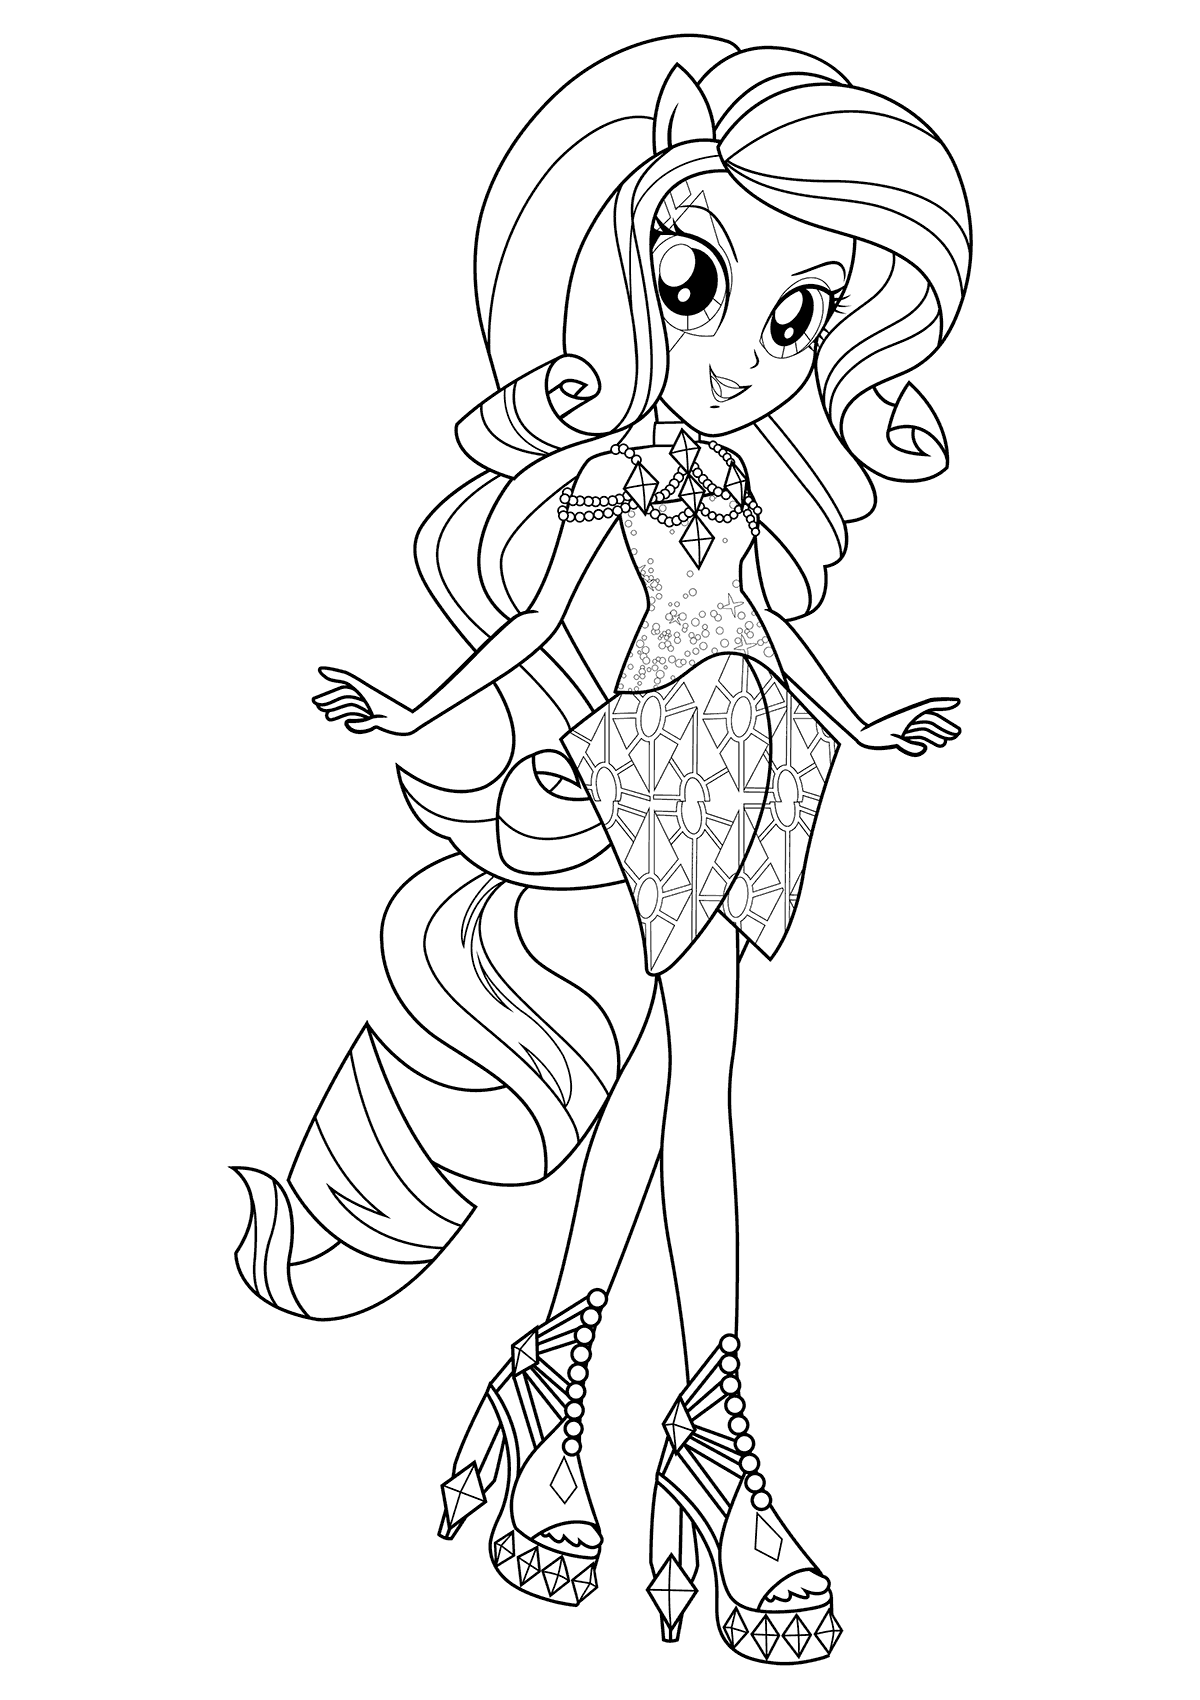 colouring pictures girls equestria girls coloring pages best coloring pages for kids girls pictures colouring